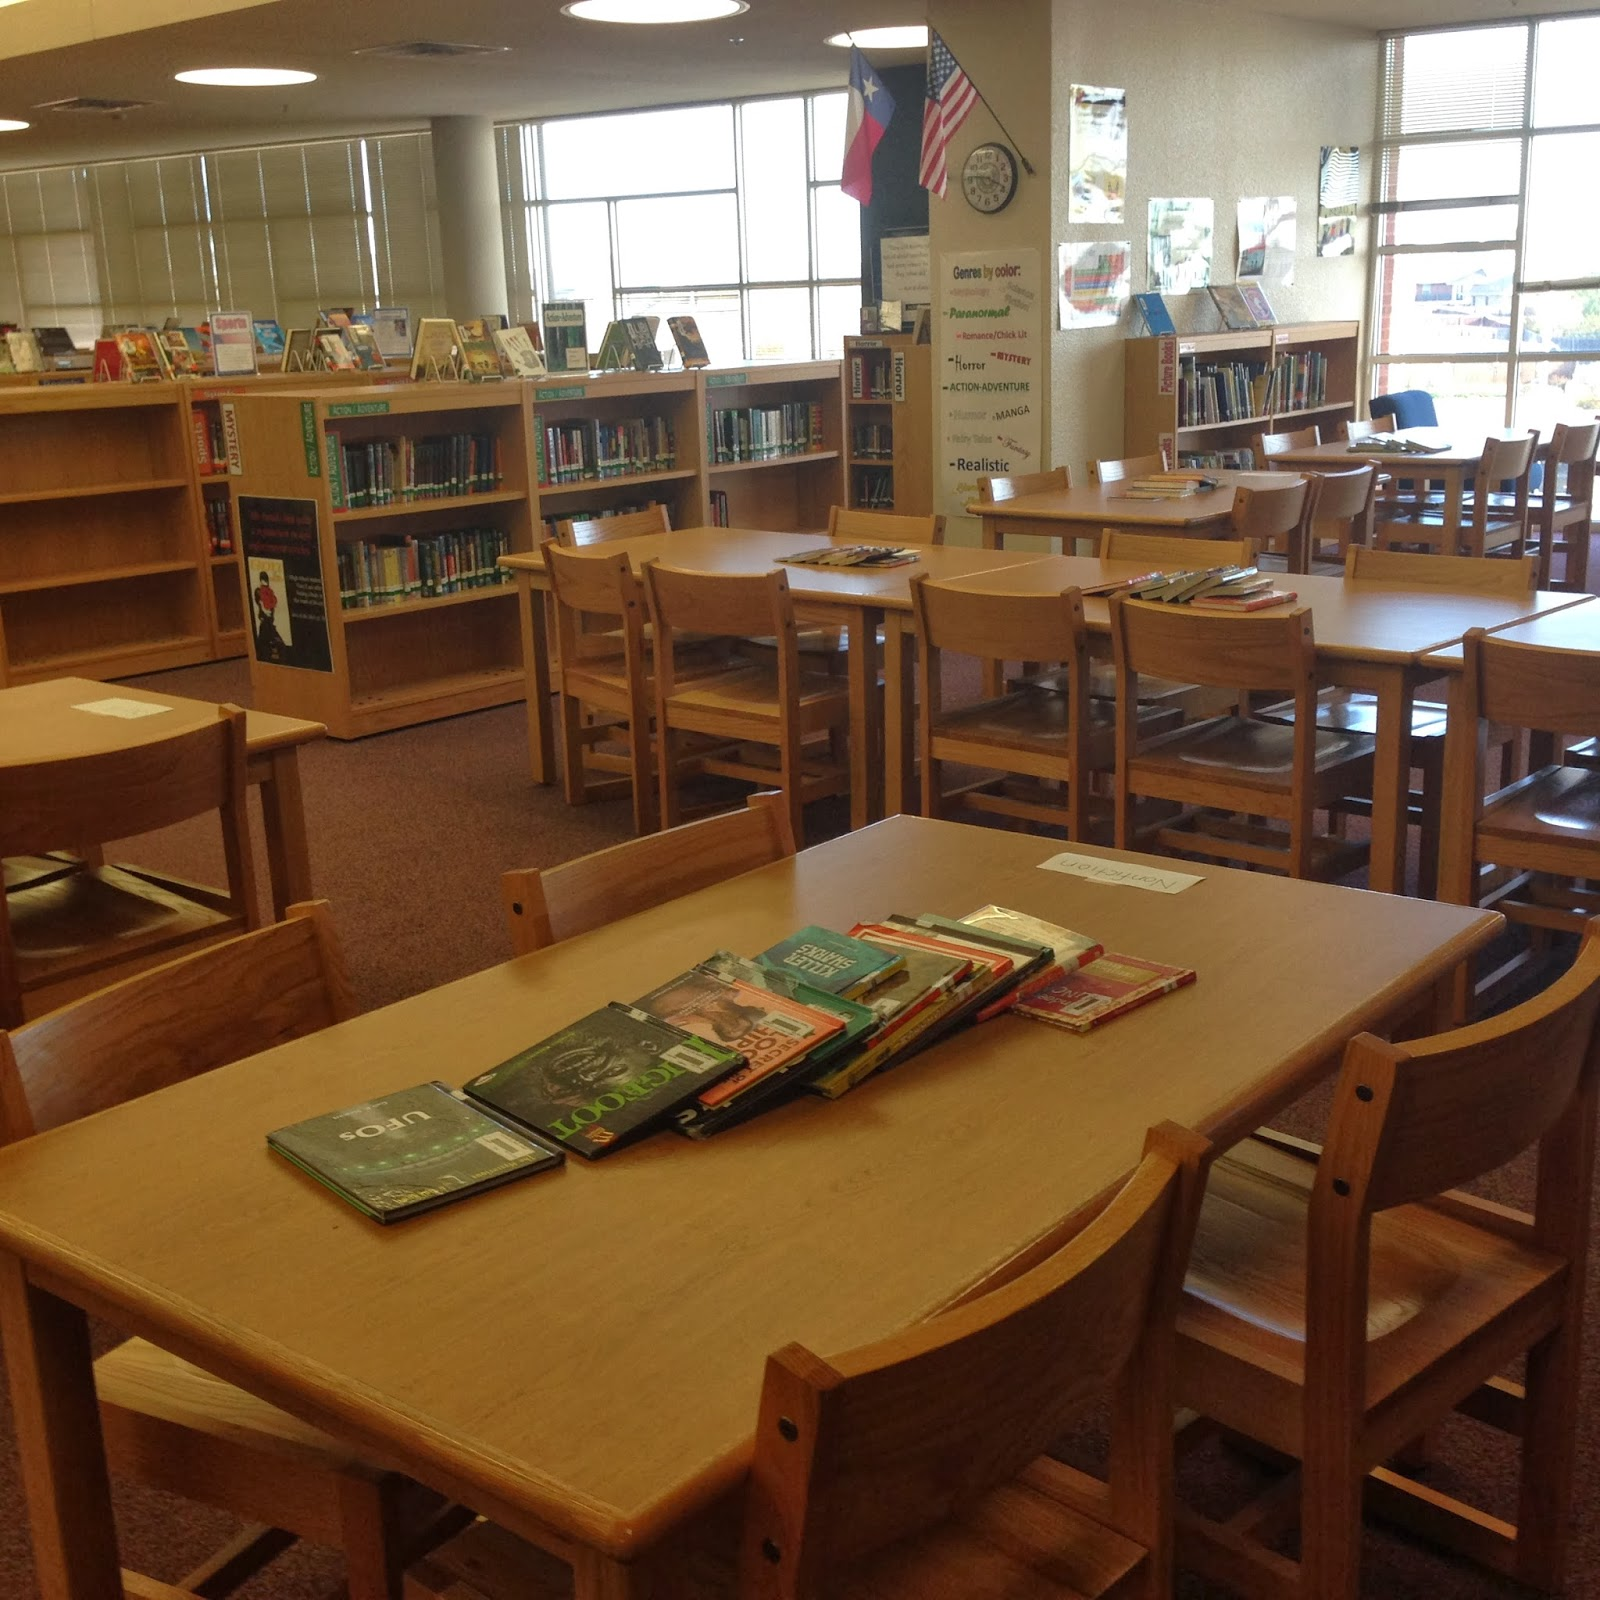 Review speed dating book club